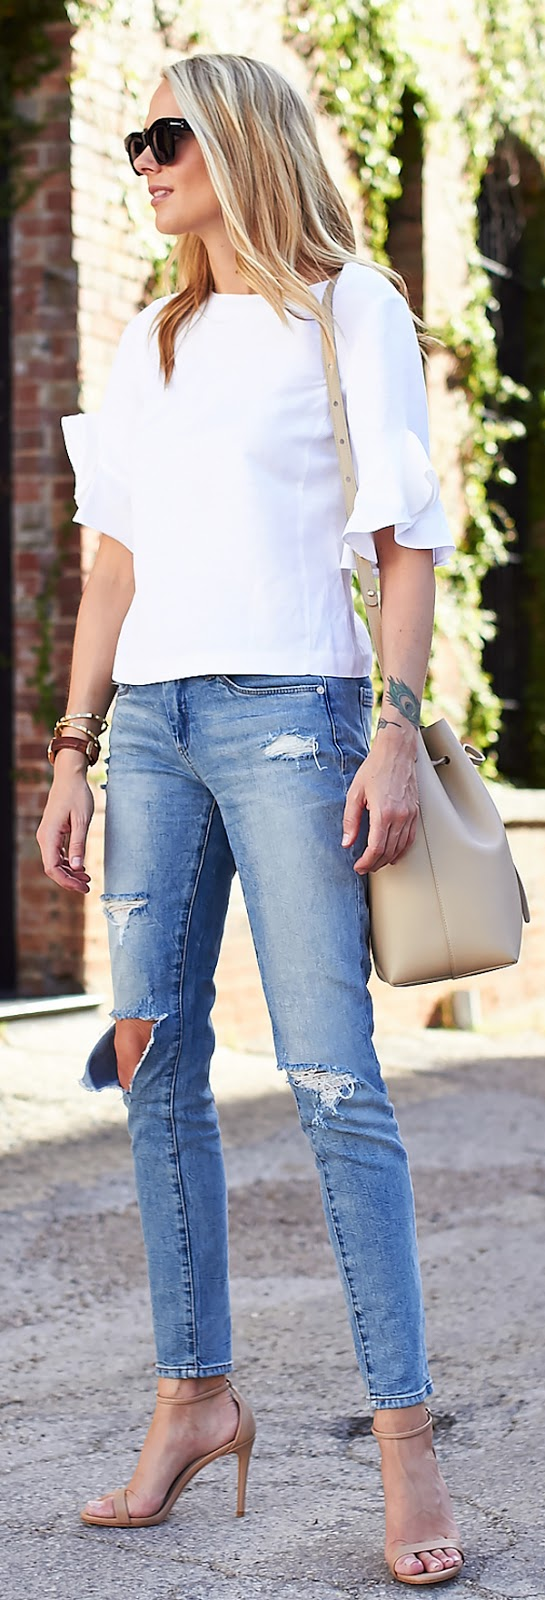 skinny jeans + blouse